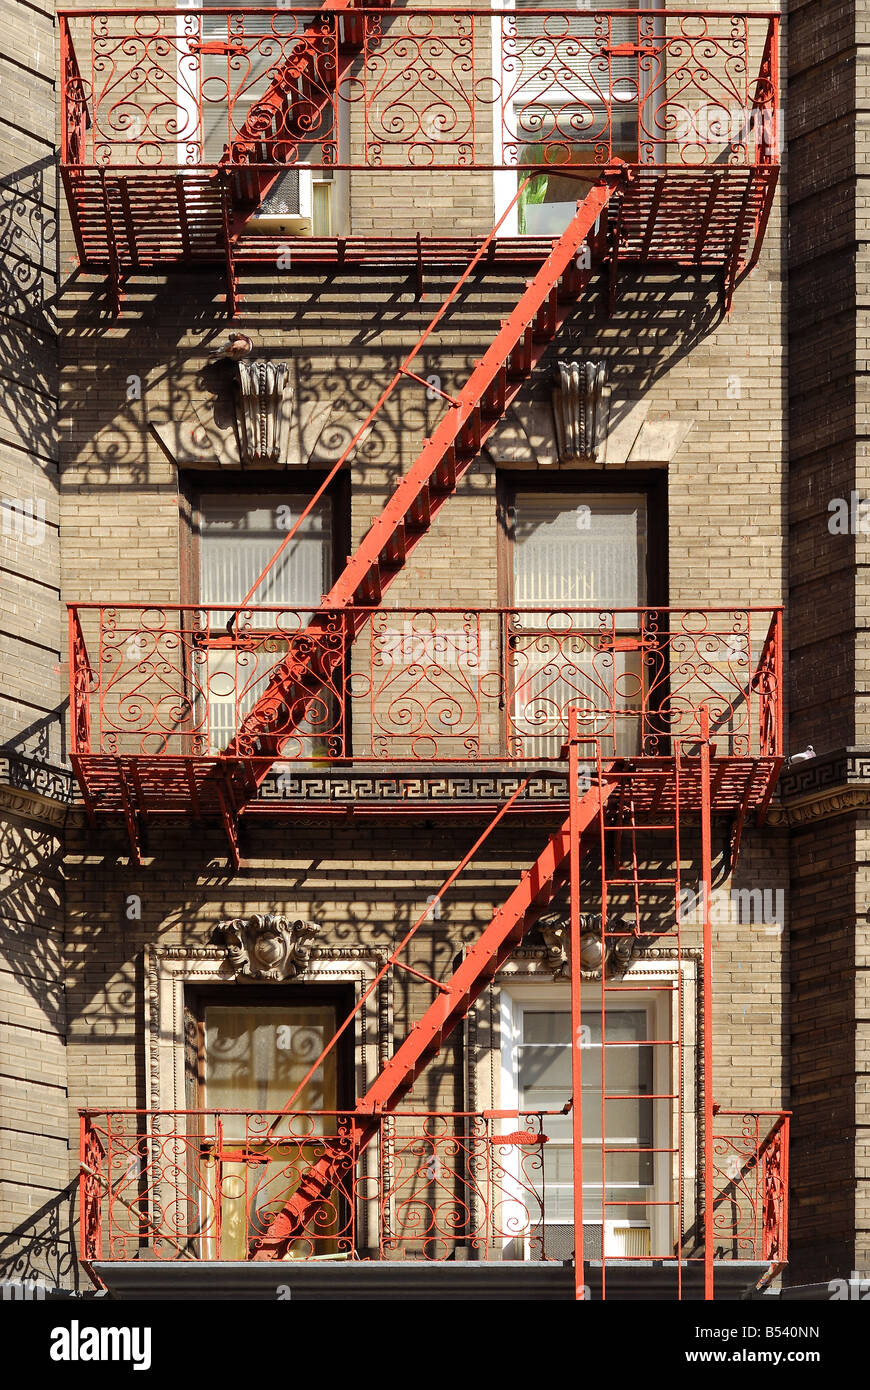 A neighborhood brick apartment with New York character as viewed from the street. Stock Photo